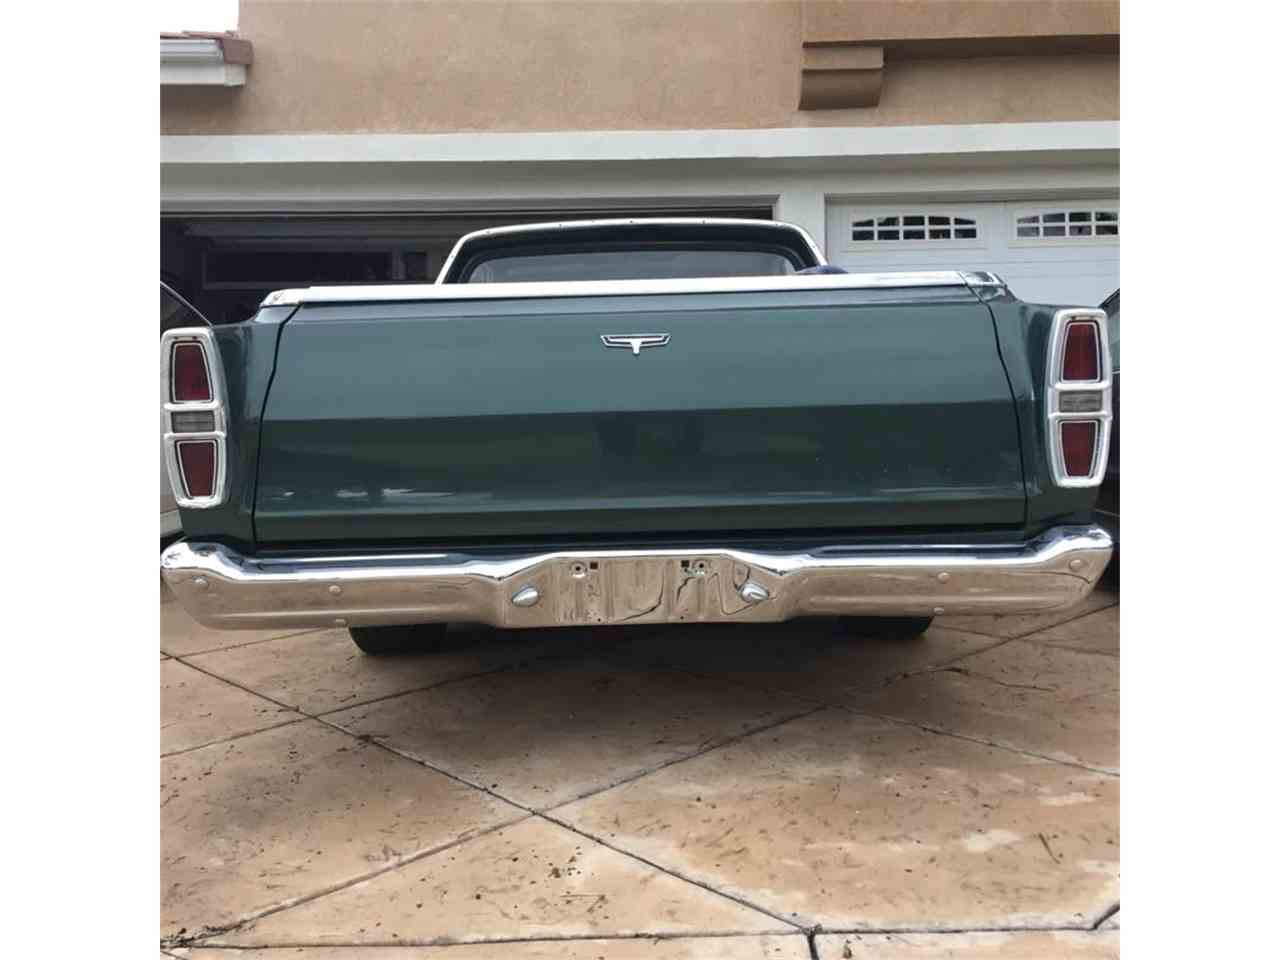 Large Picture of 1967 Ford Ranchero located in Simi Valley California - $14,500.00 Offered by a Private Seller - KJDU